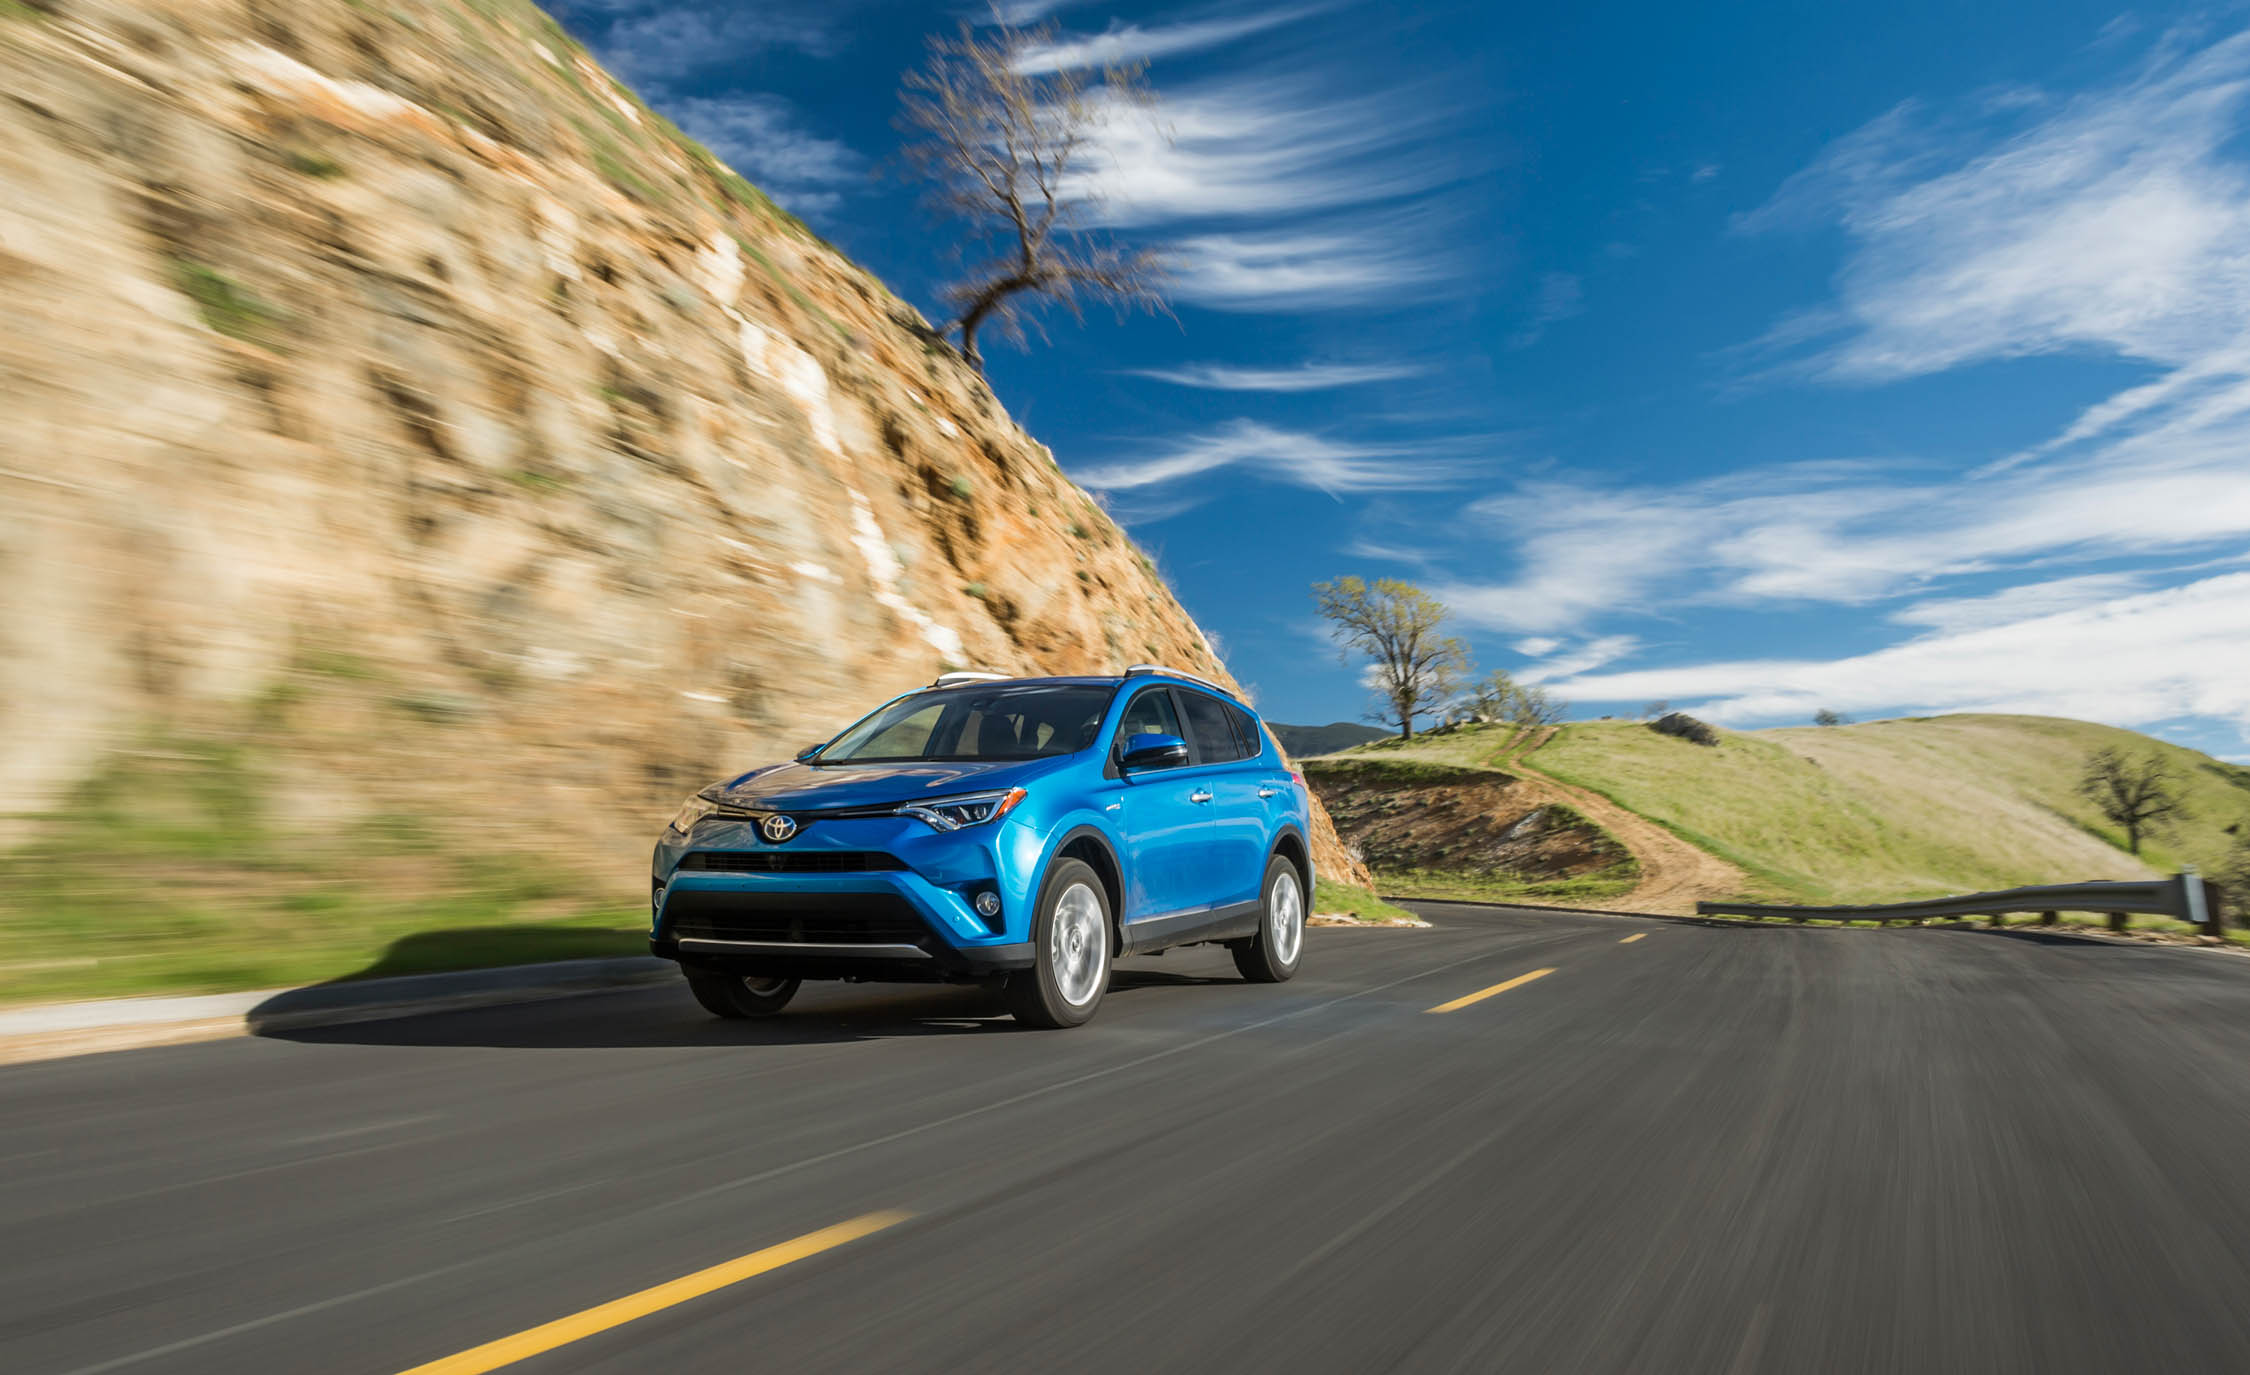 2016 Toyota Rav4 Hybrid Test Drive (Photo 23 of 26)